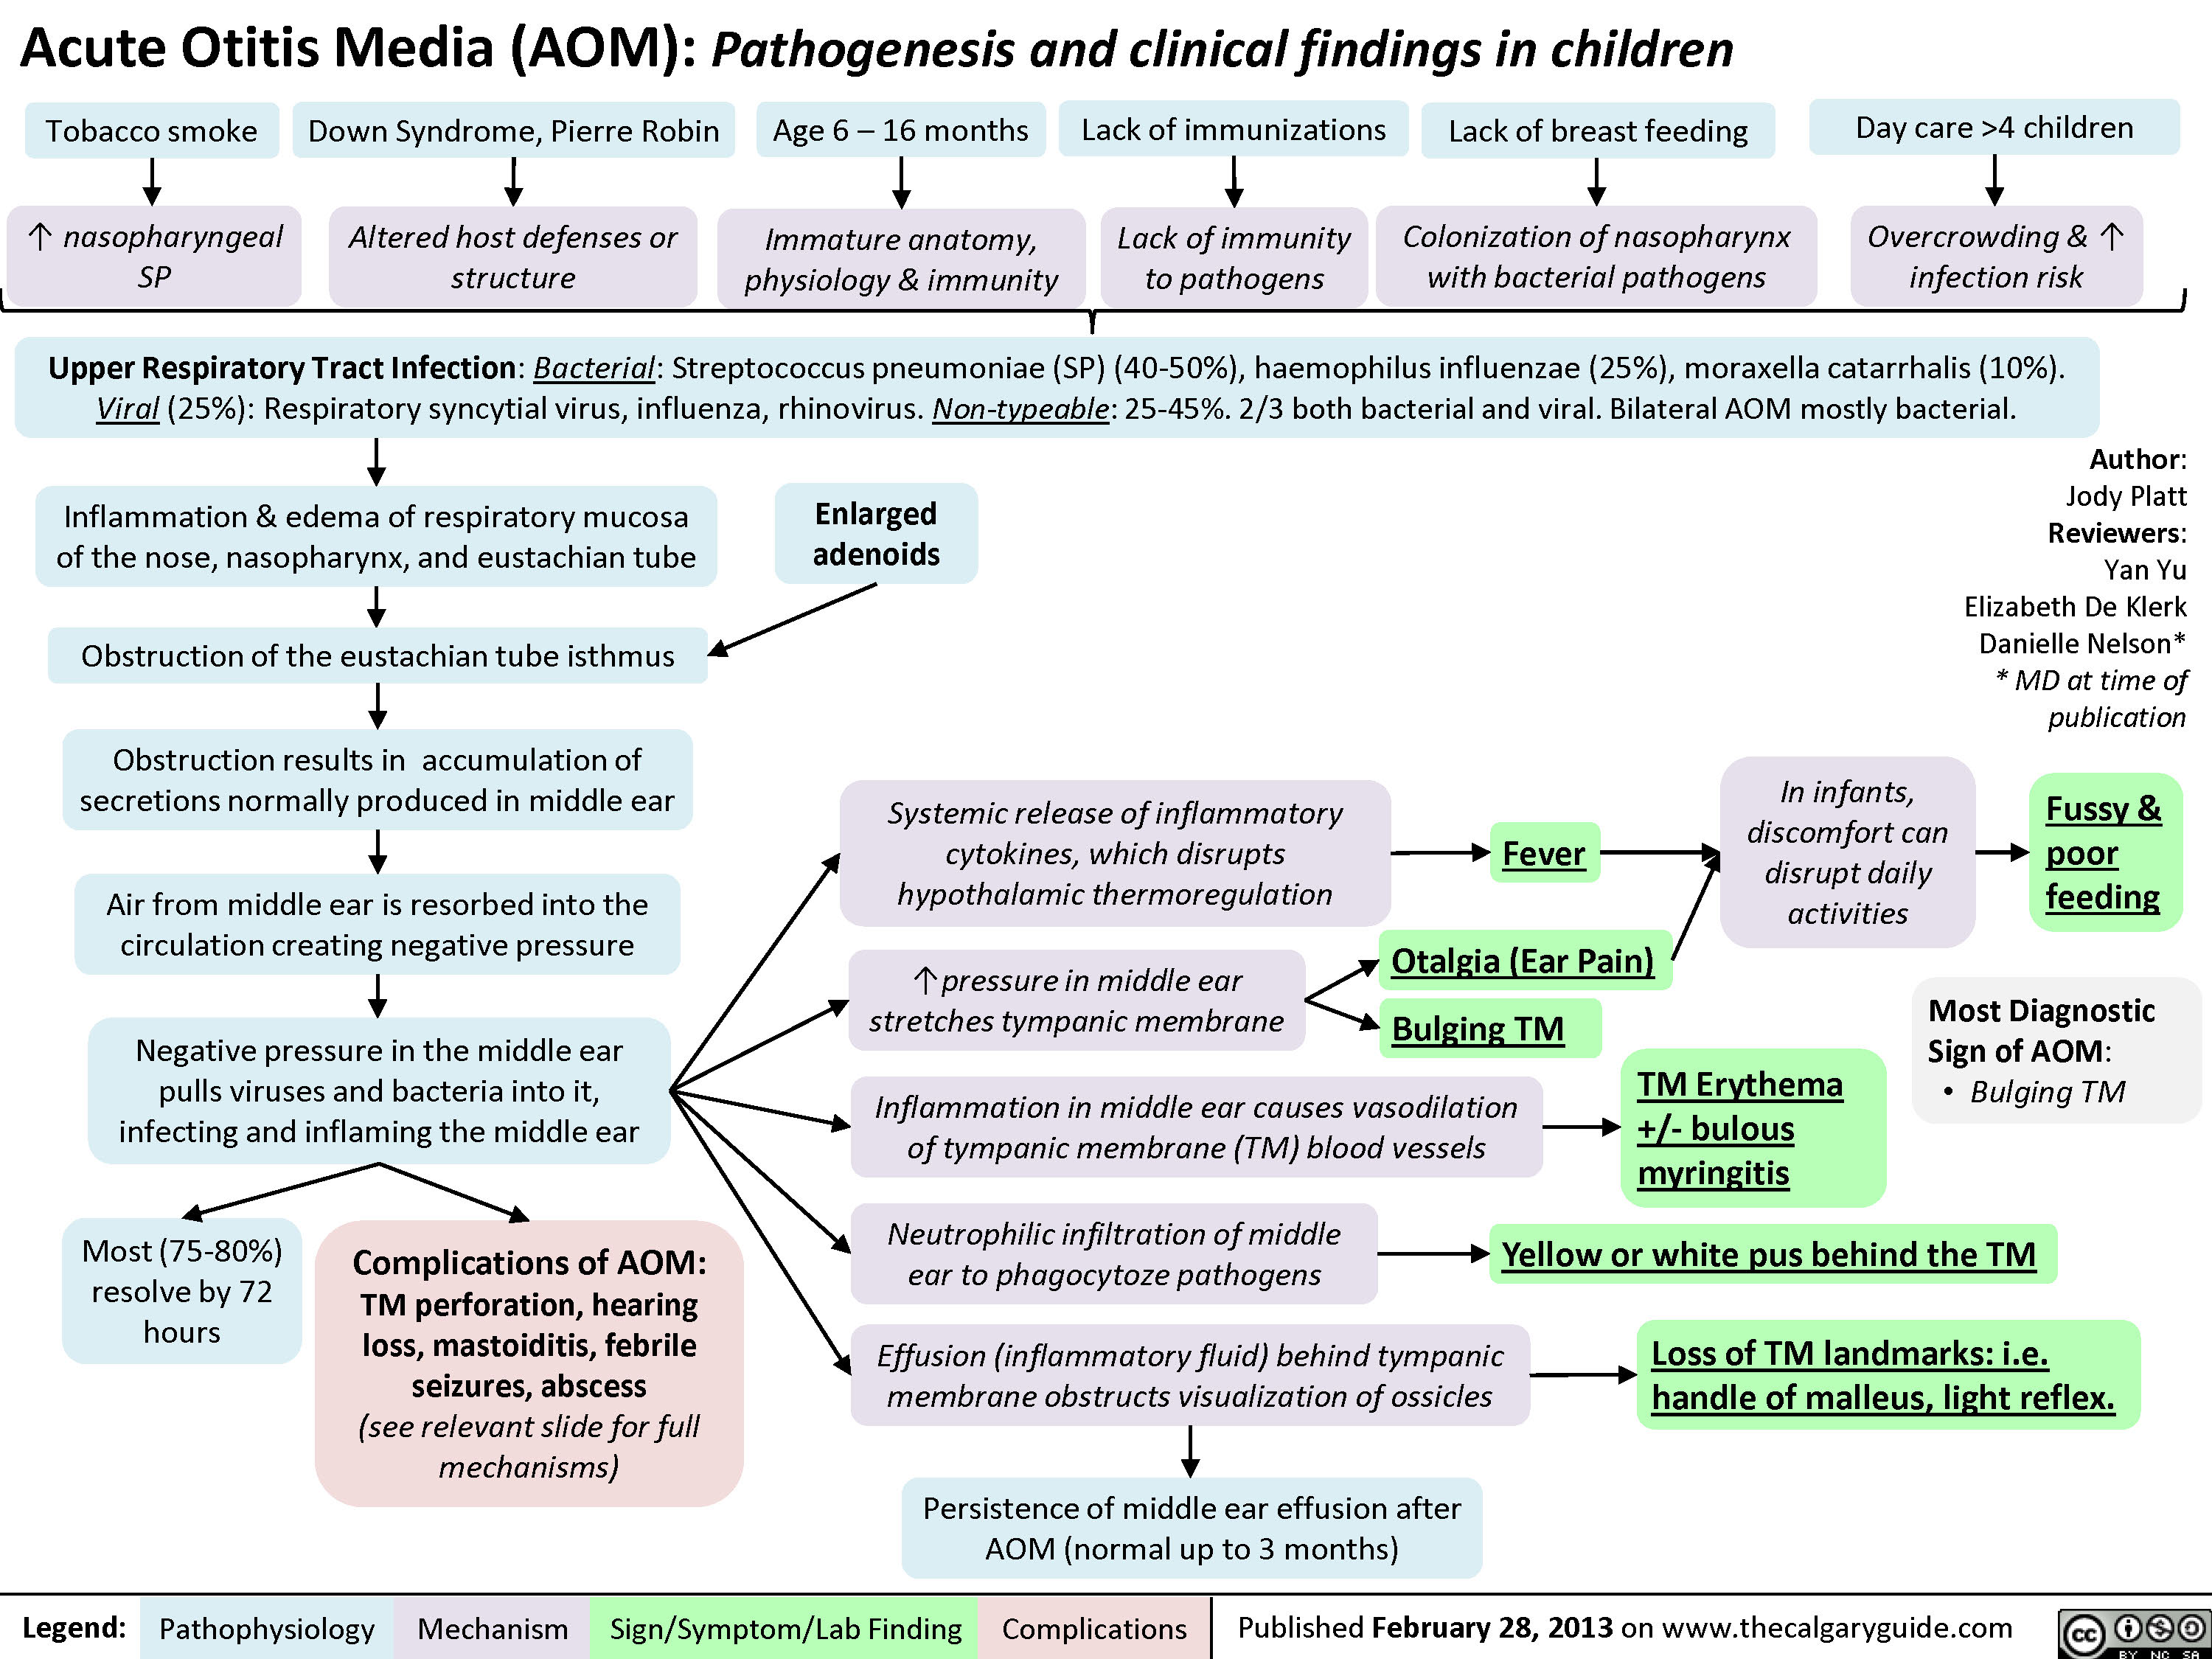 Acute Otitis Media: Pathogenesis and Clinical Findings (in Children)